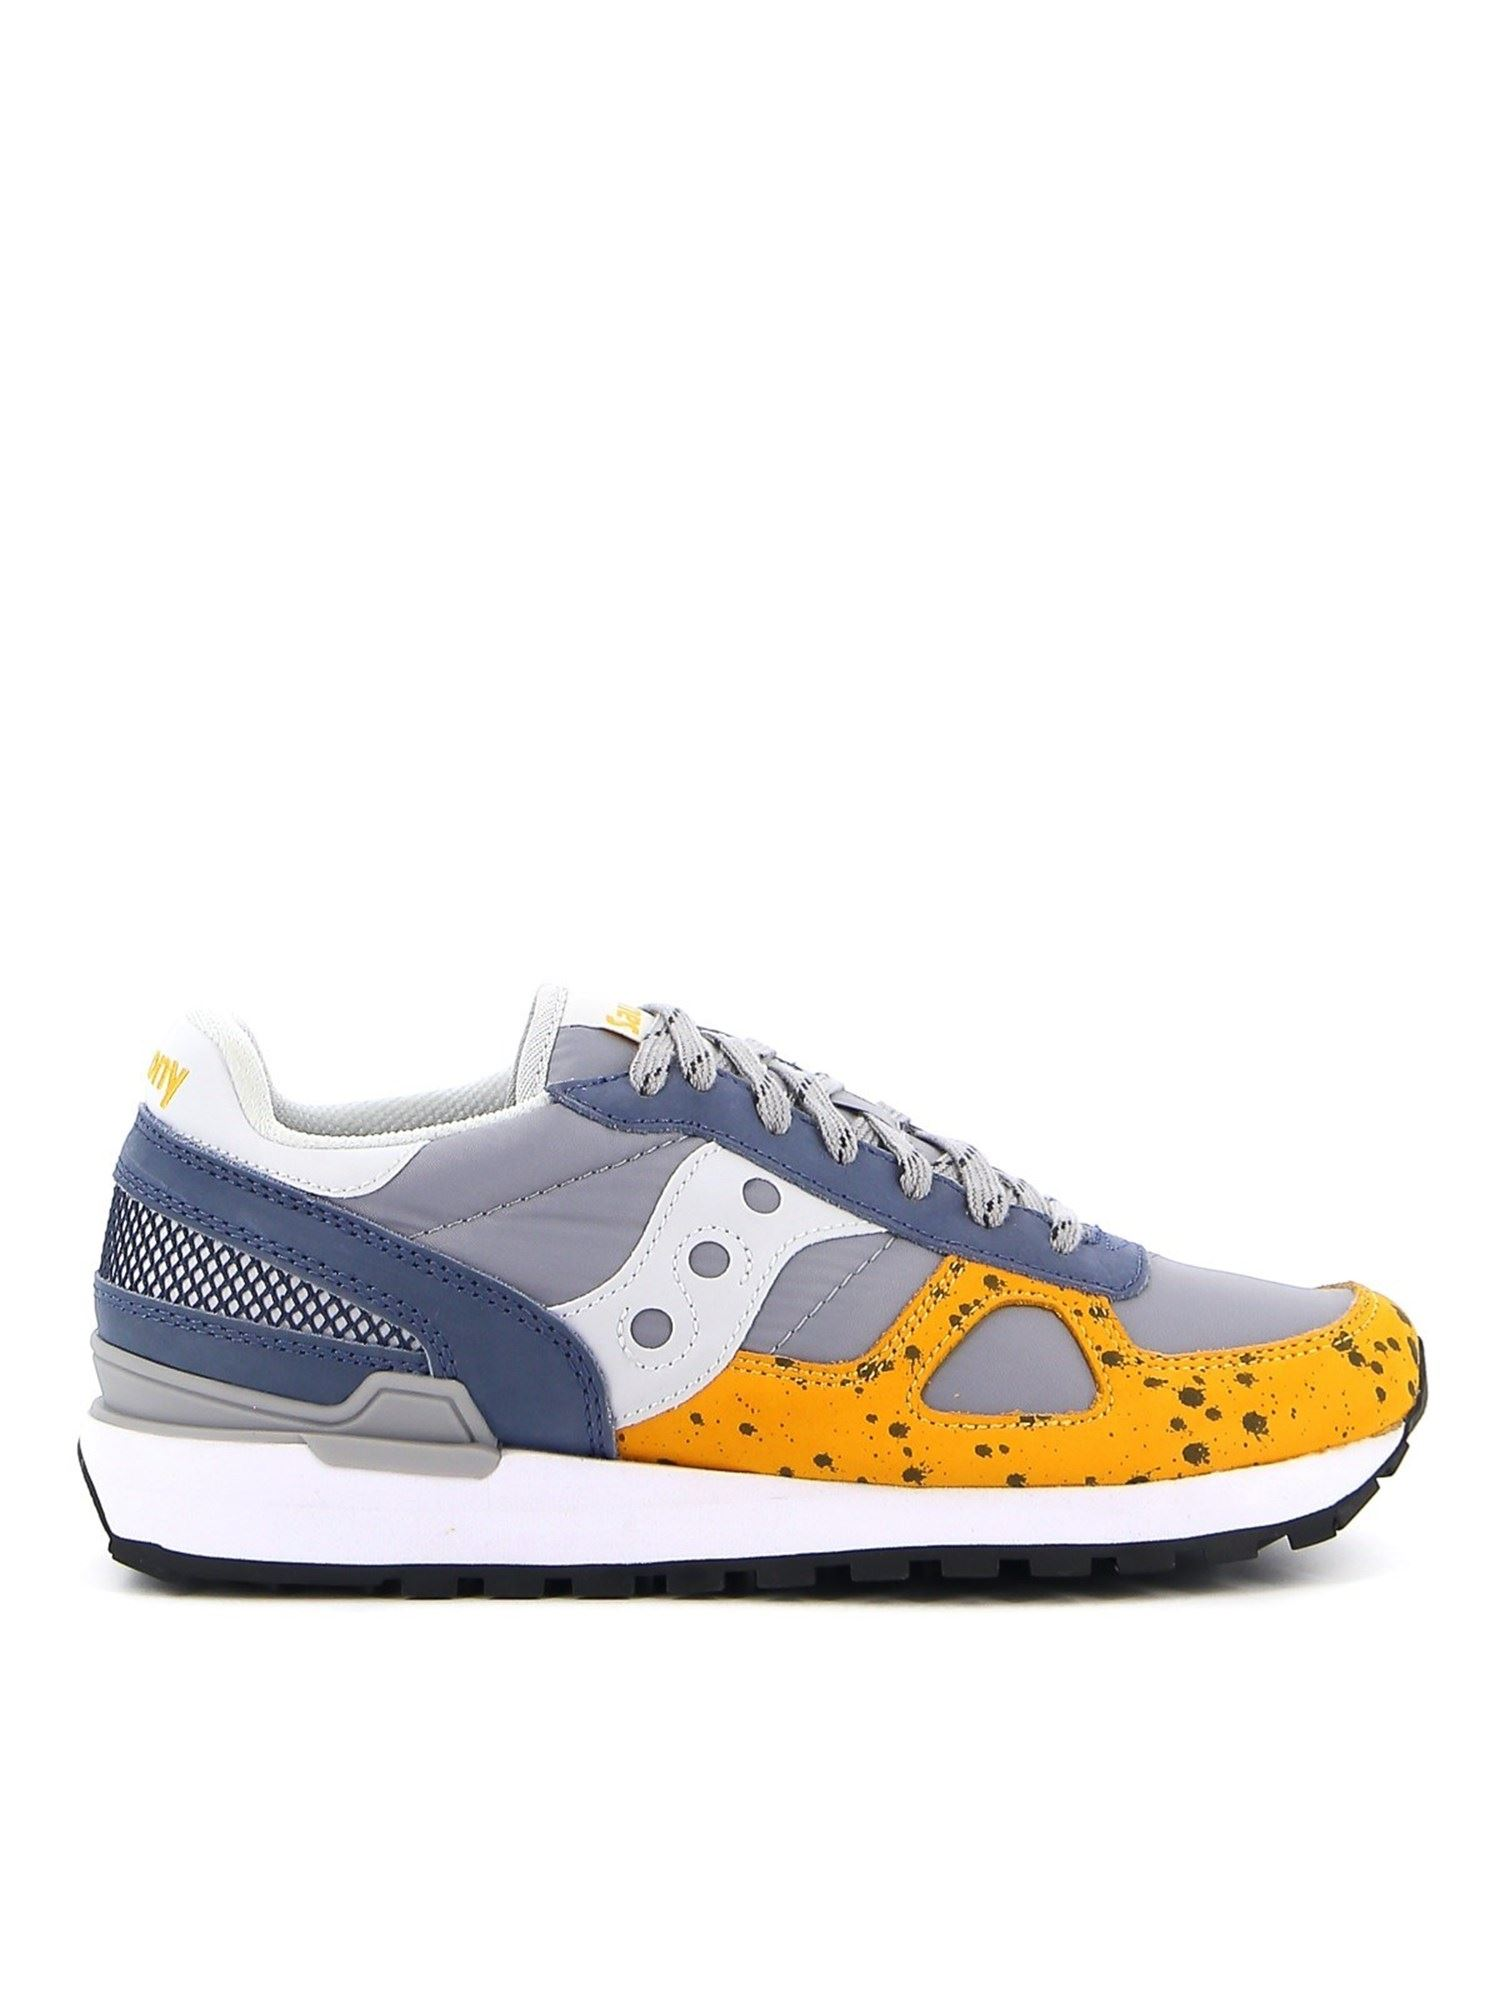 Saucony Leathers SHADOW ORIGINAL LEATHER AND FABRIC SNEAKERS IN MULTICOLOR